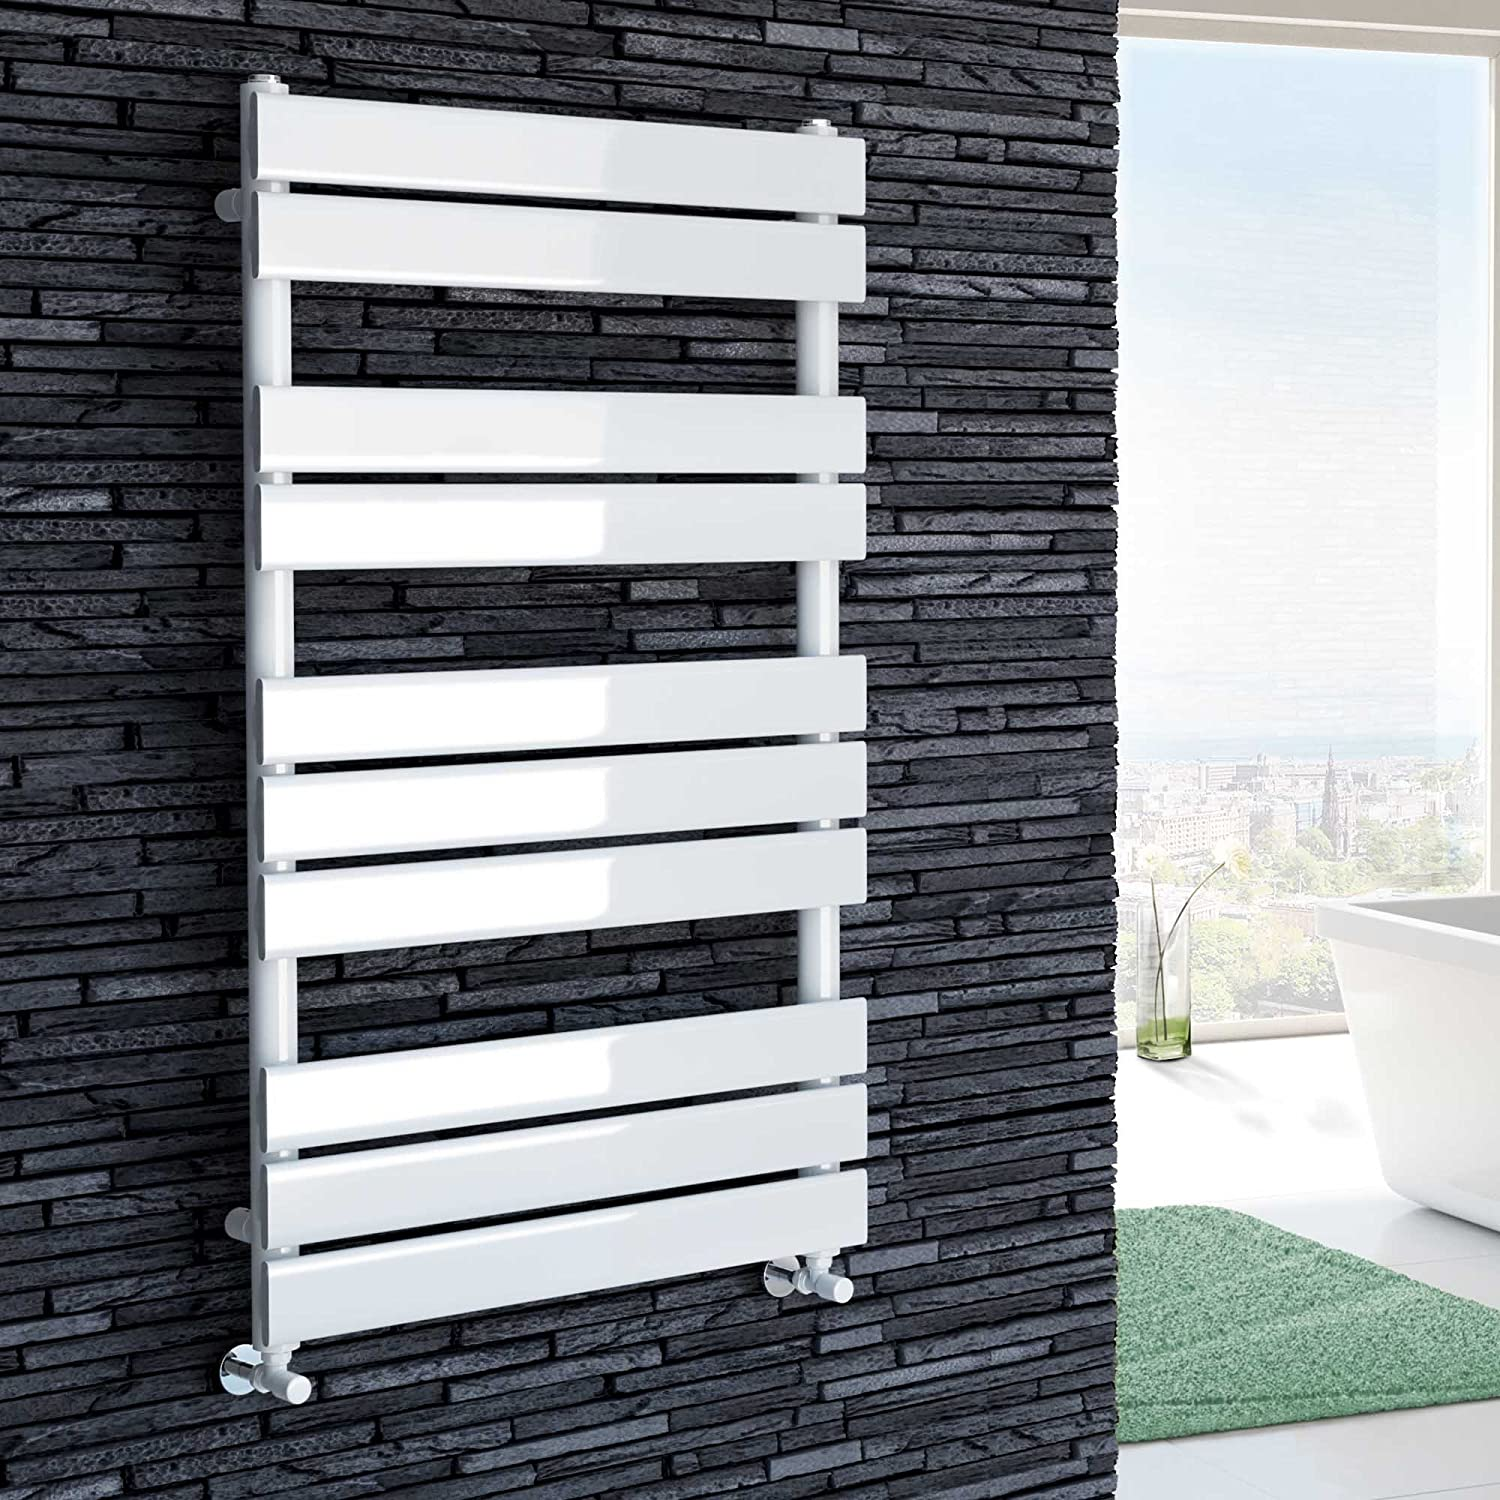 iBathUK 1000 x 600 White Flat Panel Heated Towel Rail Bathroom Radiator - All Sizes